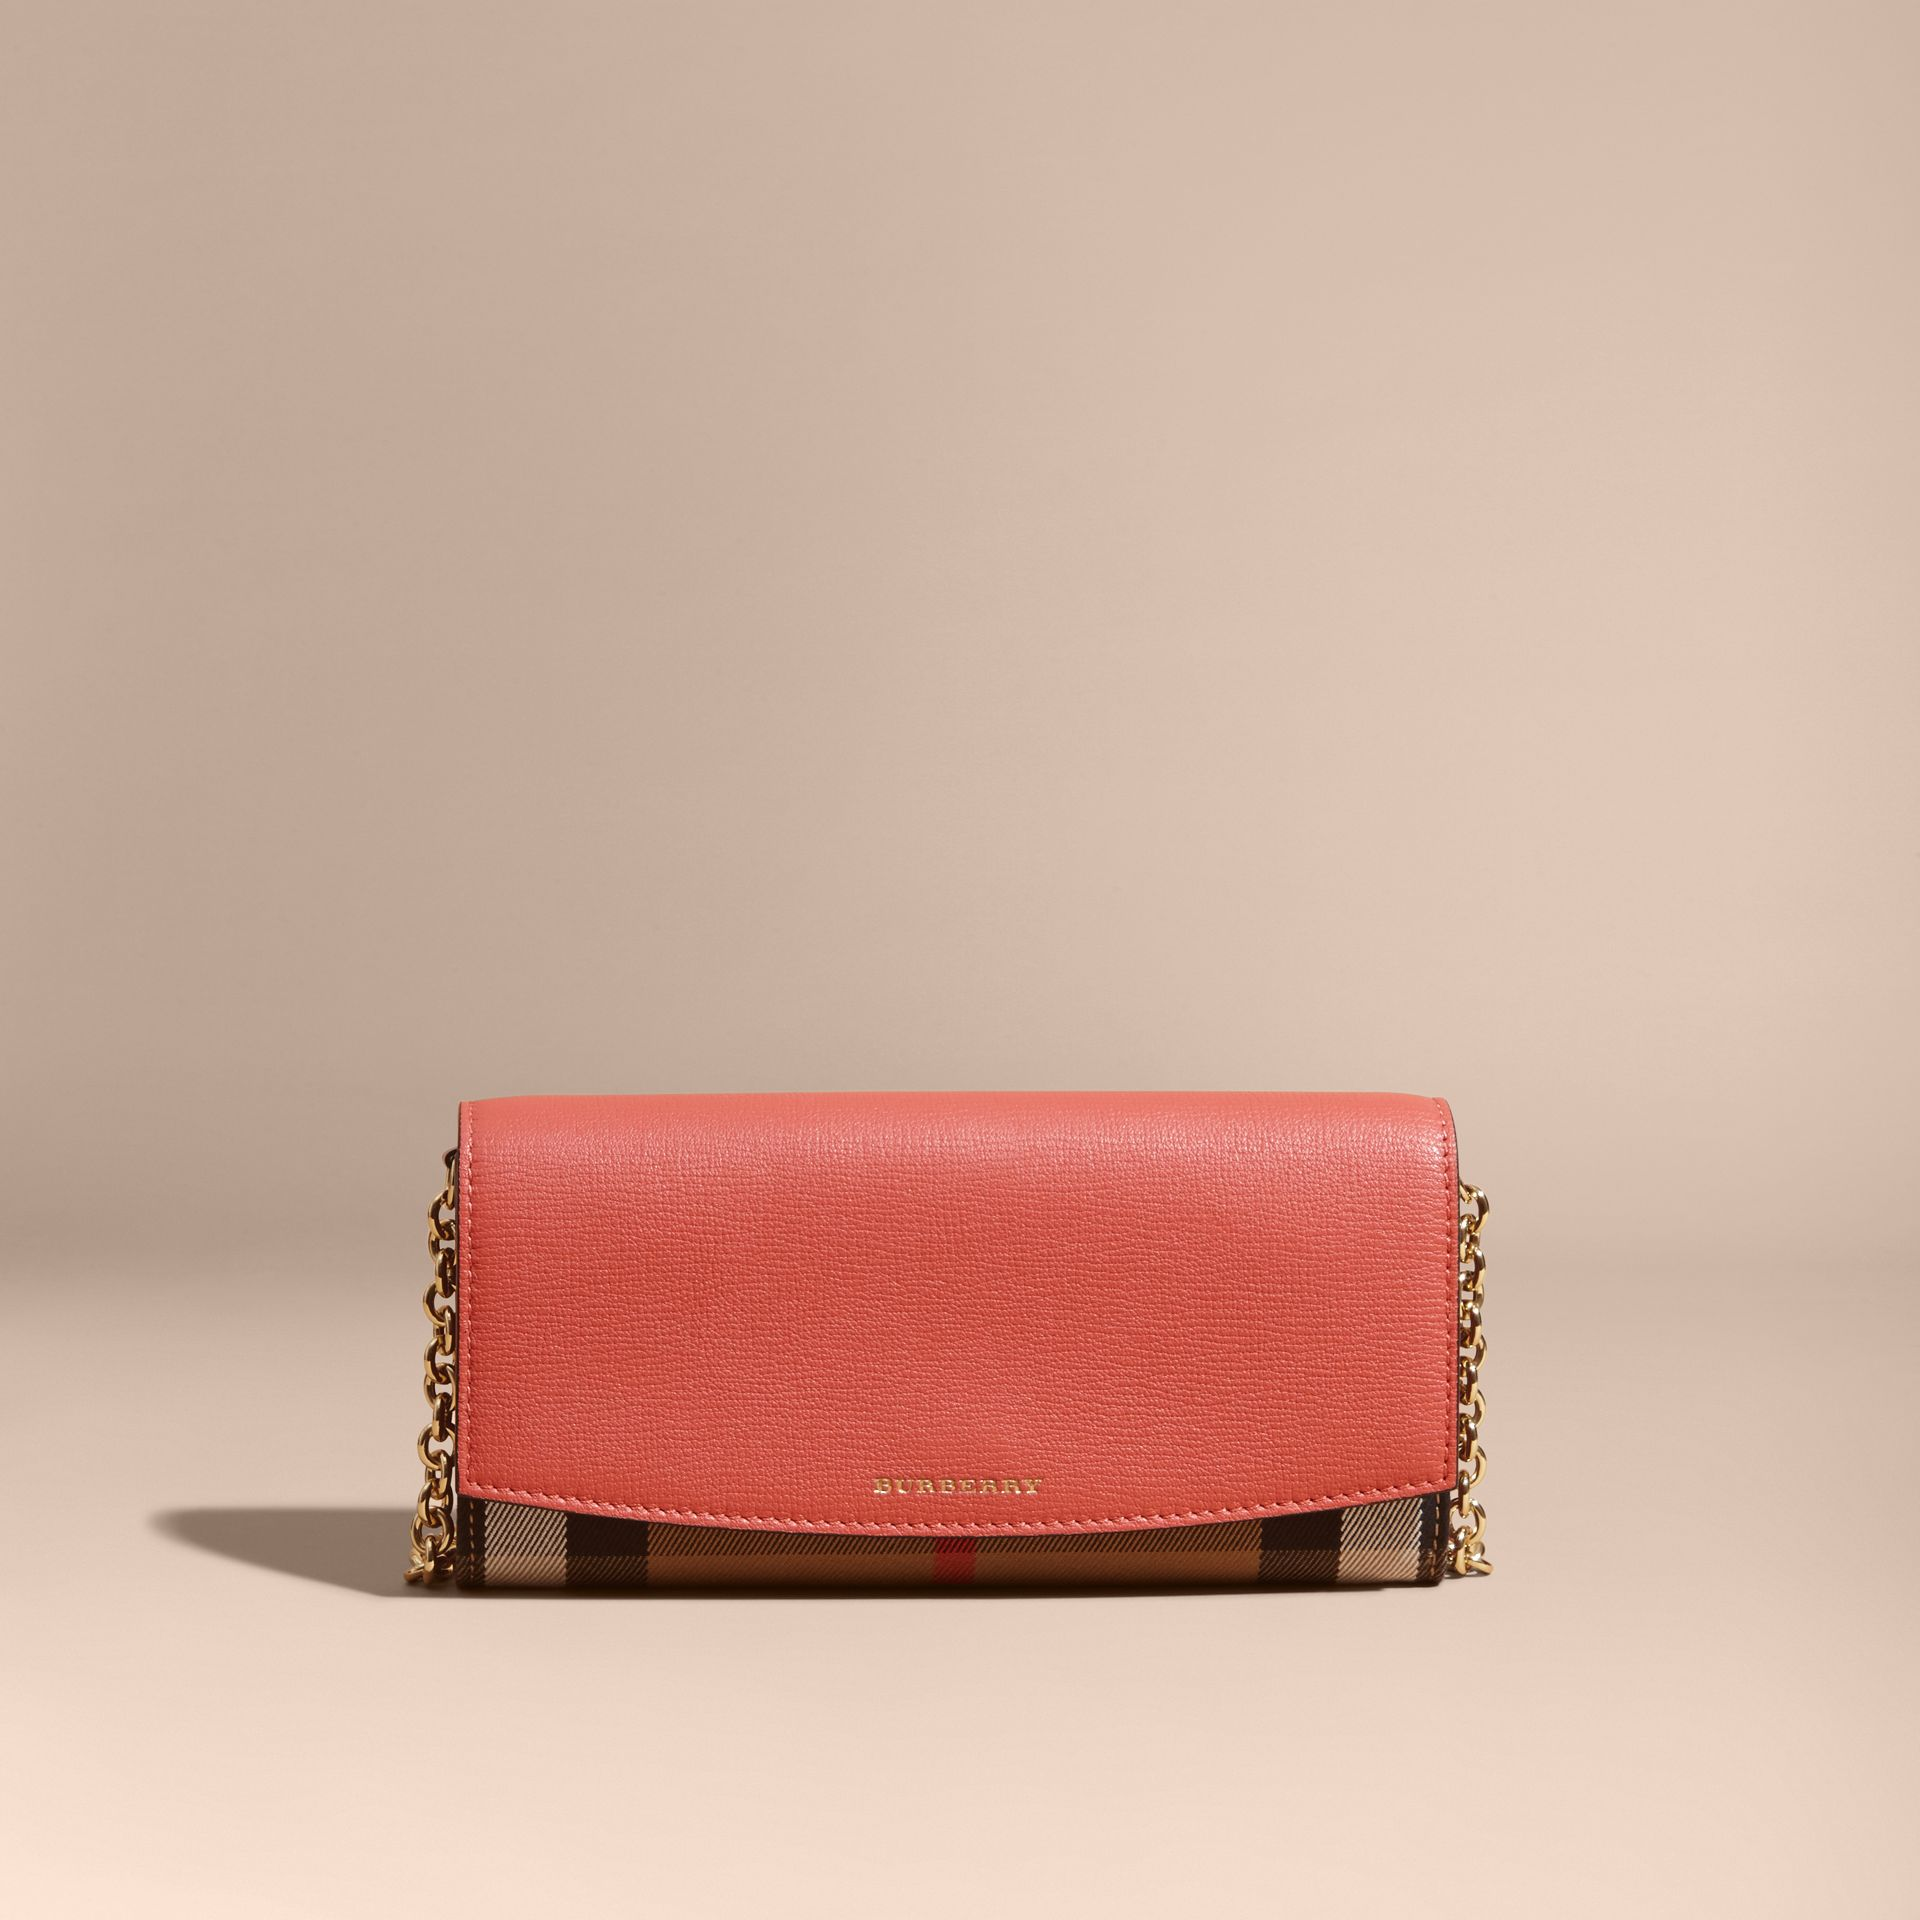 House Check and Leather Wallet with Chain in Cinnamon Red - Women | Burberry Canada - gallery image 7